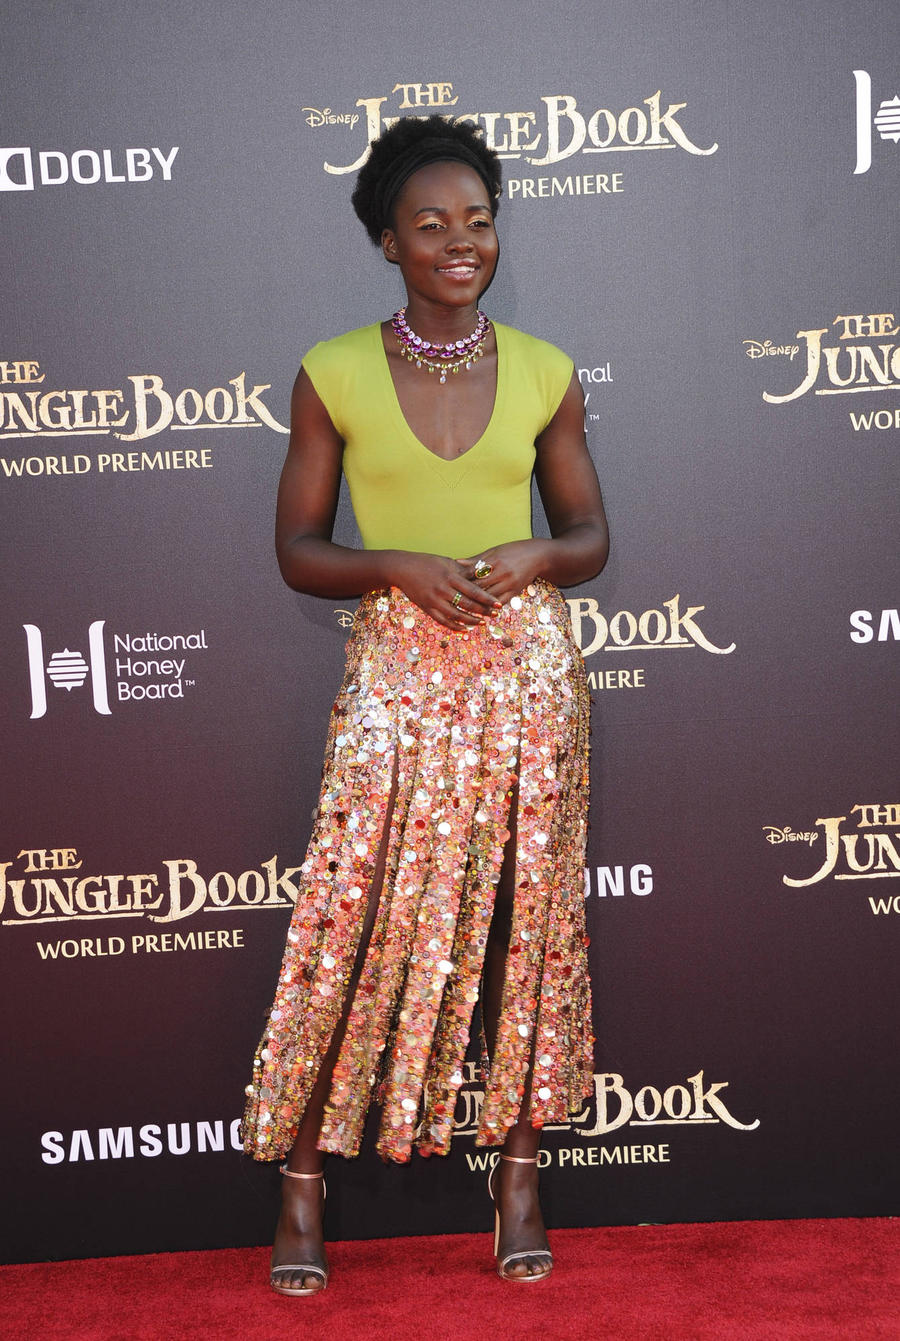 Lupita Nyong'o: 'I Feel Like A Woman Now'